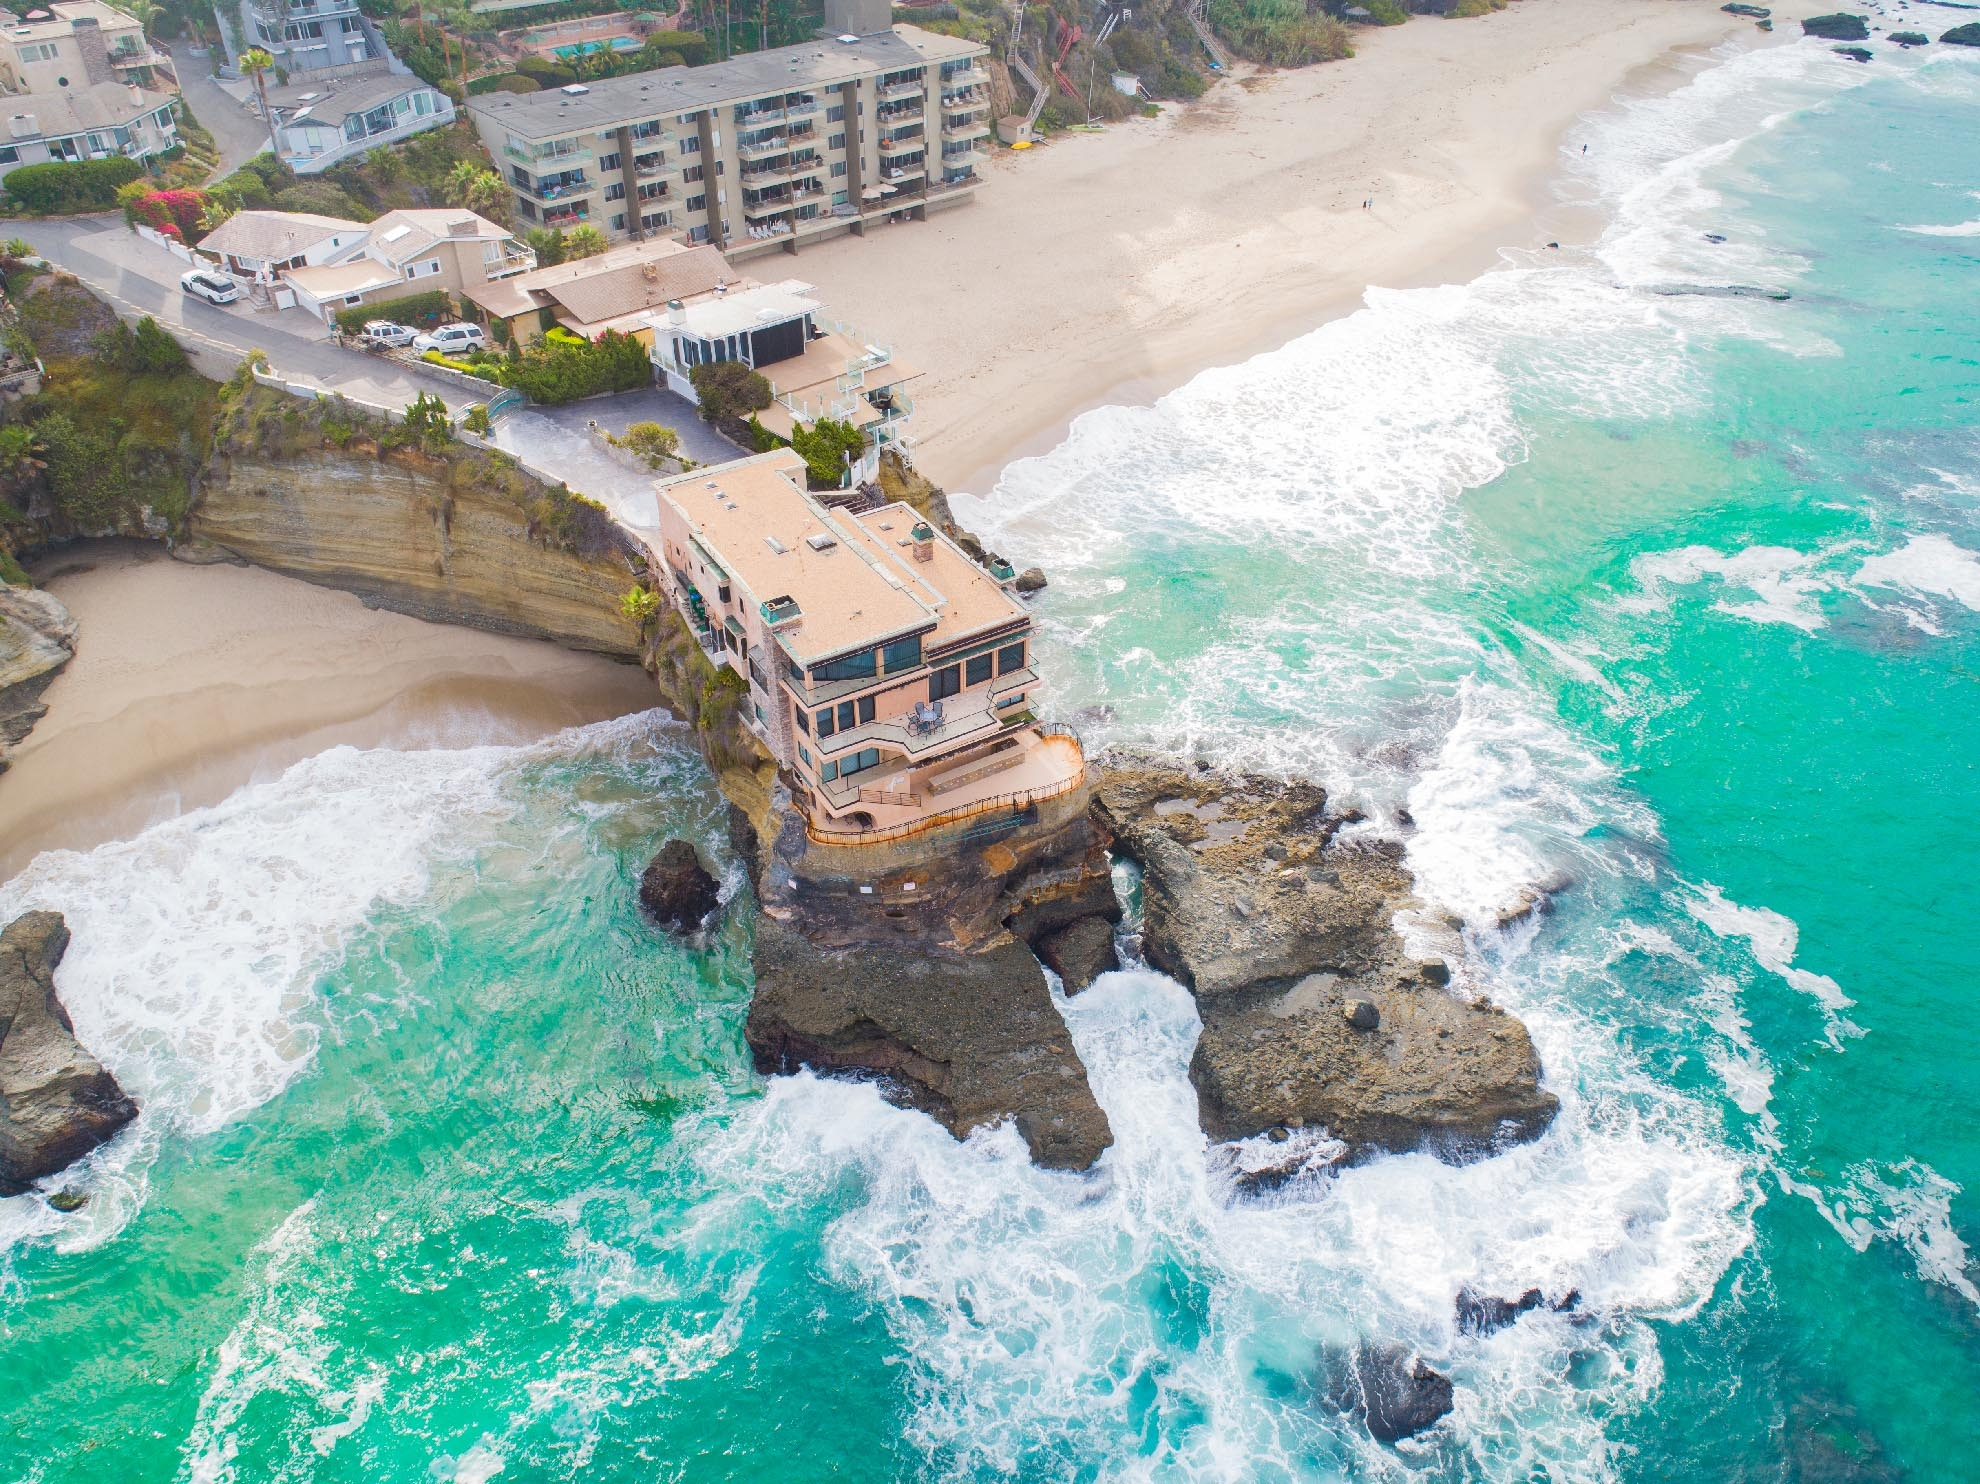 Drone Photograph of Ocean front home in Laguna Beach California